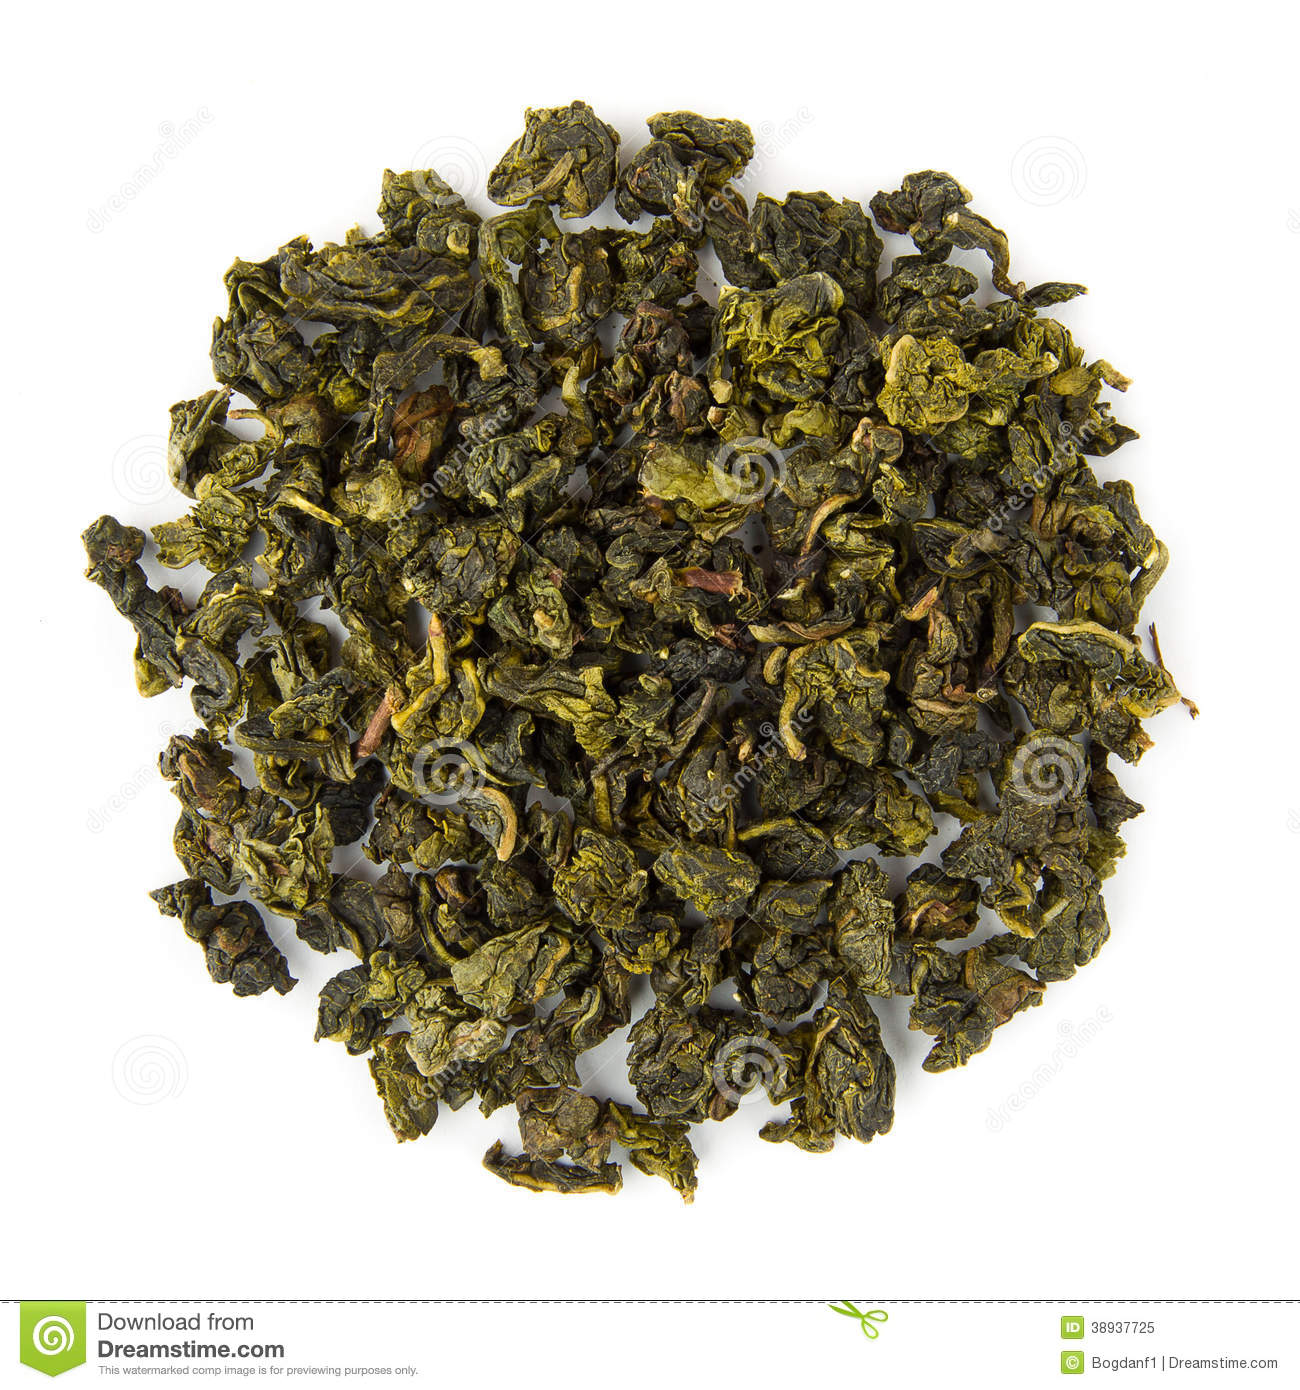 Oolong-Tee milchig